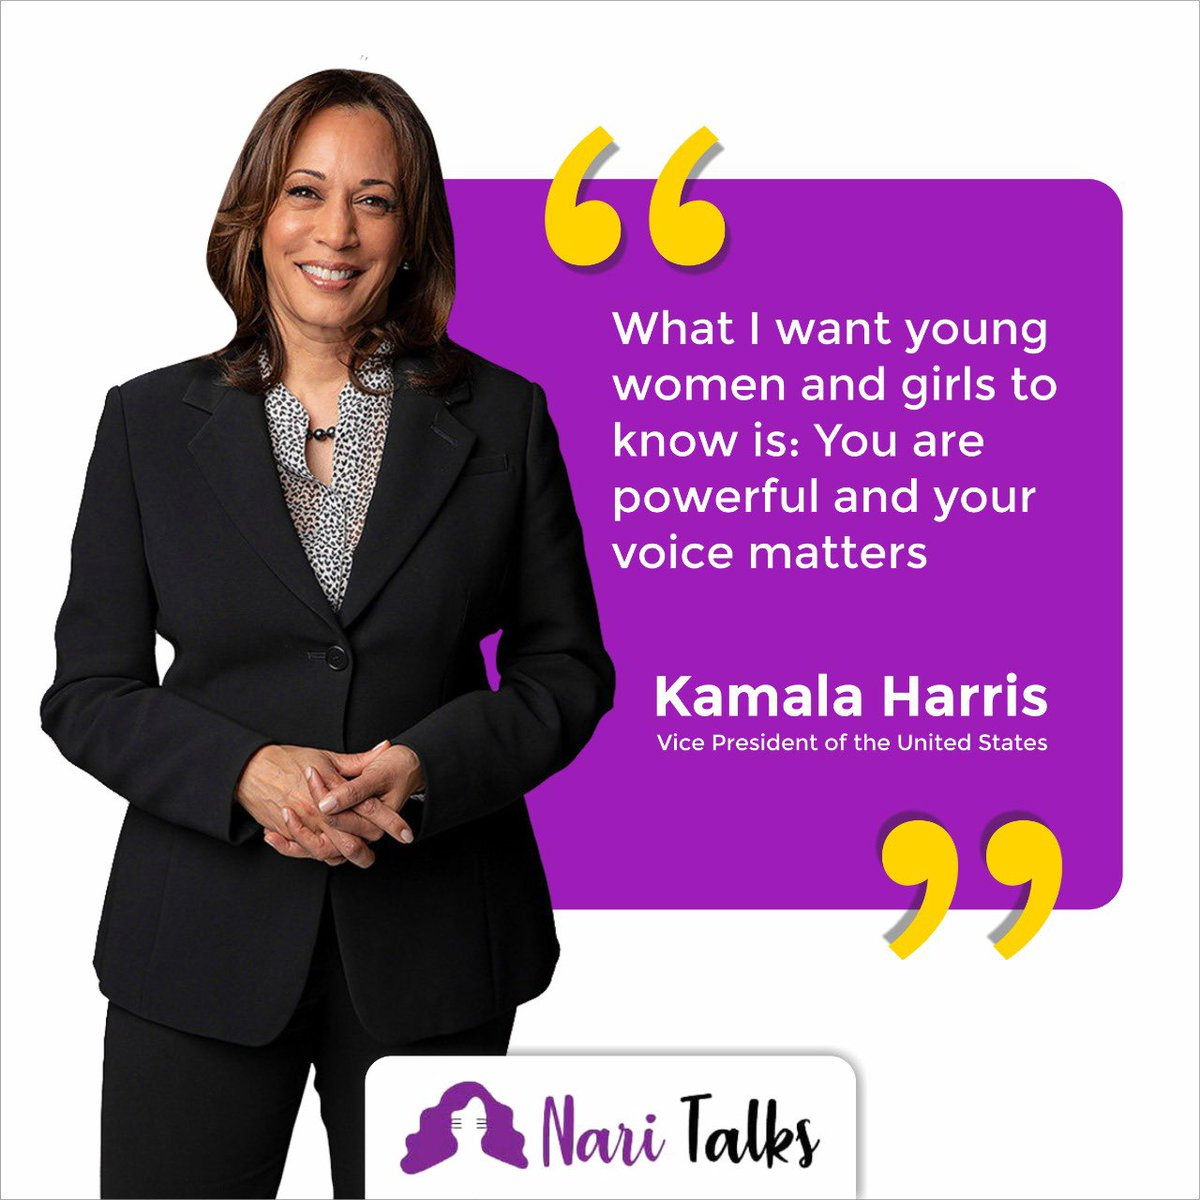 Kamala Harris has made history as the first female, first black and first Asian-American US vice-president. She was sworn in just before Joe Biden took the oath of office to become the 46th US president. #KamalaHarris #VicePresidentHarris  #AmericaOrTrump #AfterTrump #JoeBiden